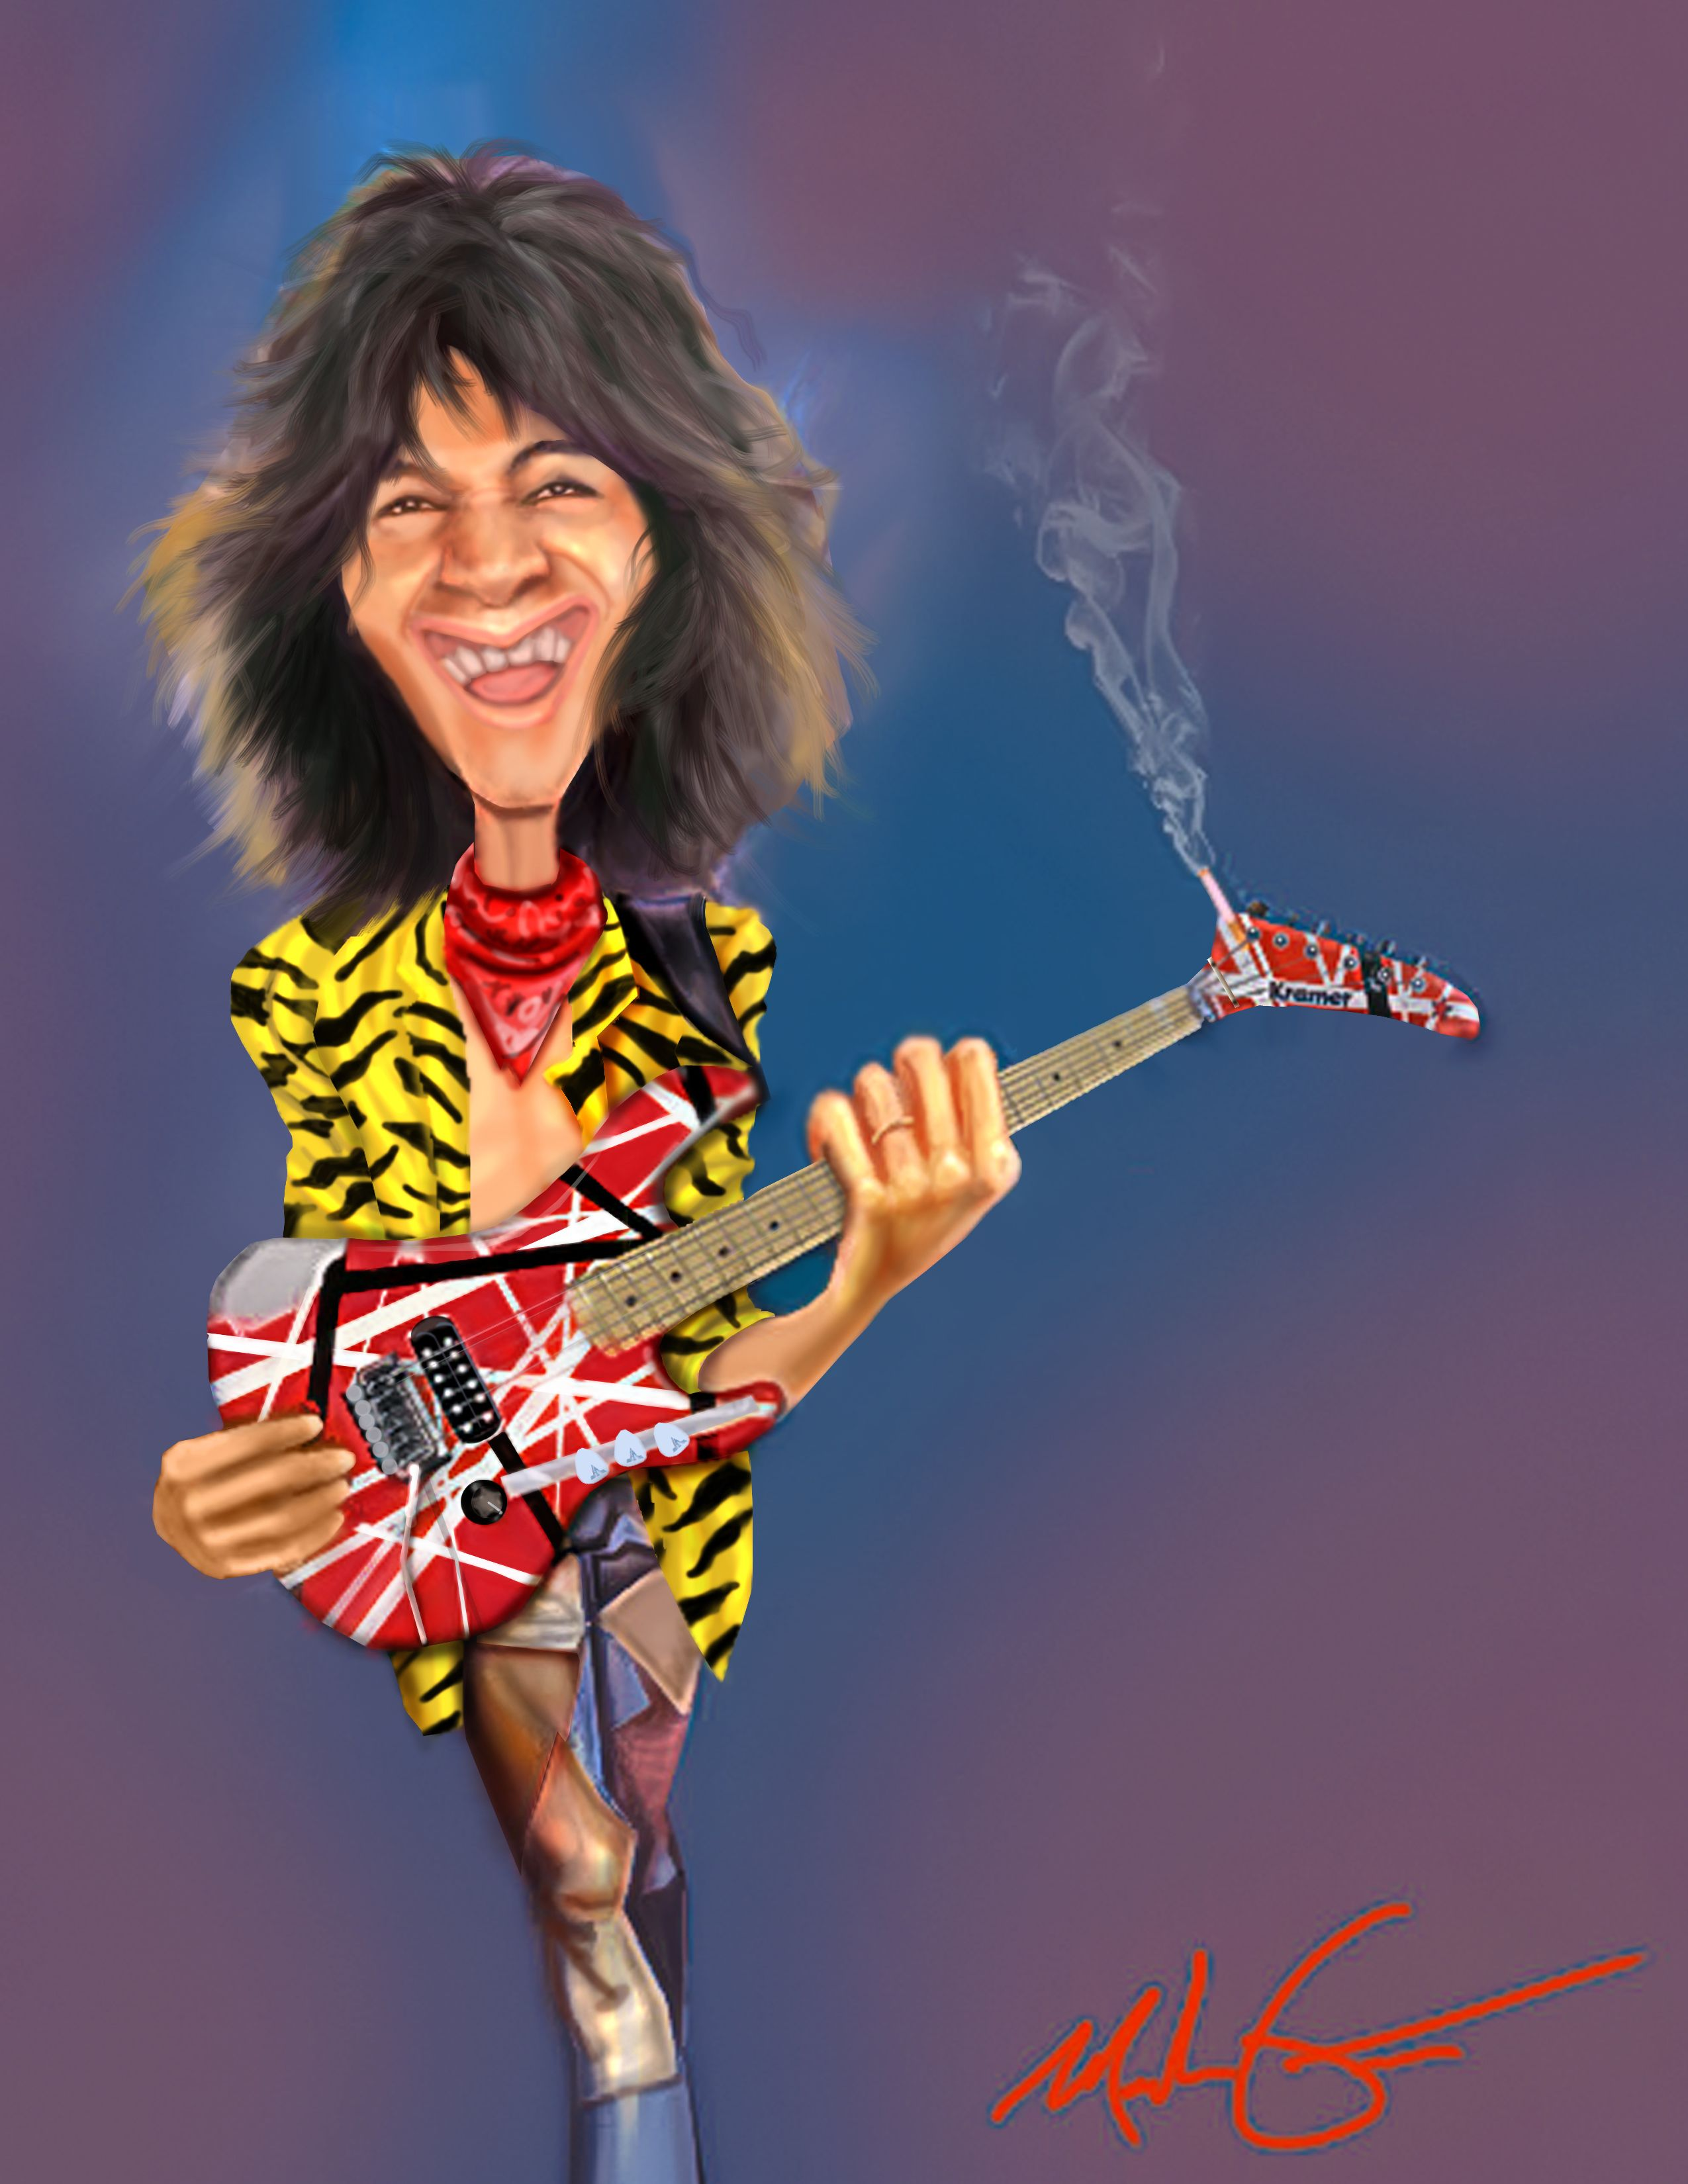 A Caricature I Did Of The Legend Eddie Van Halen Celebrity Caricatures Caricature Van Halen